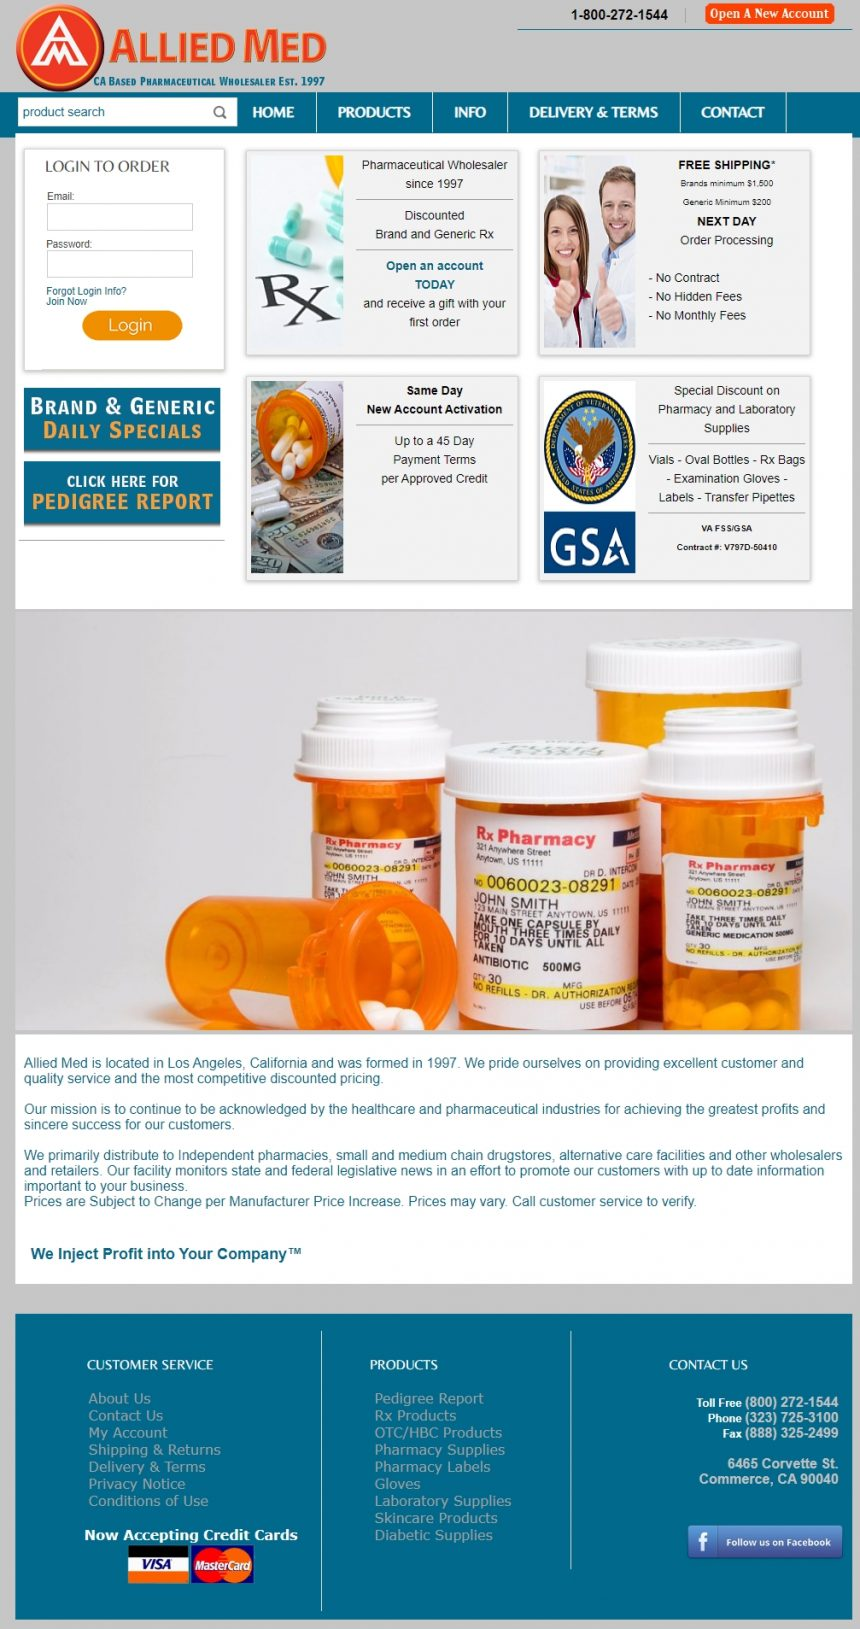 Pharmaceutical Website Design AmwRx.com